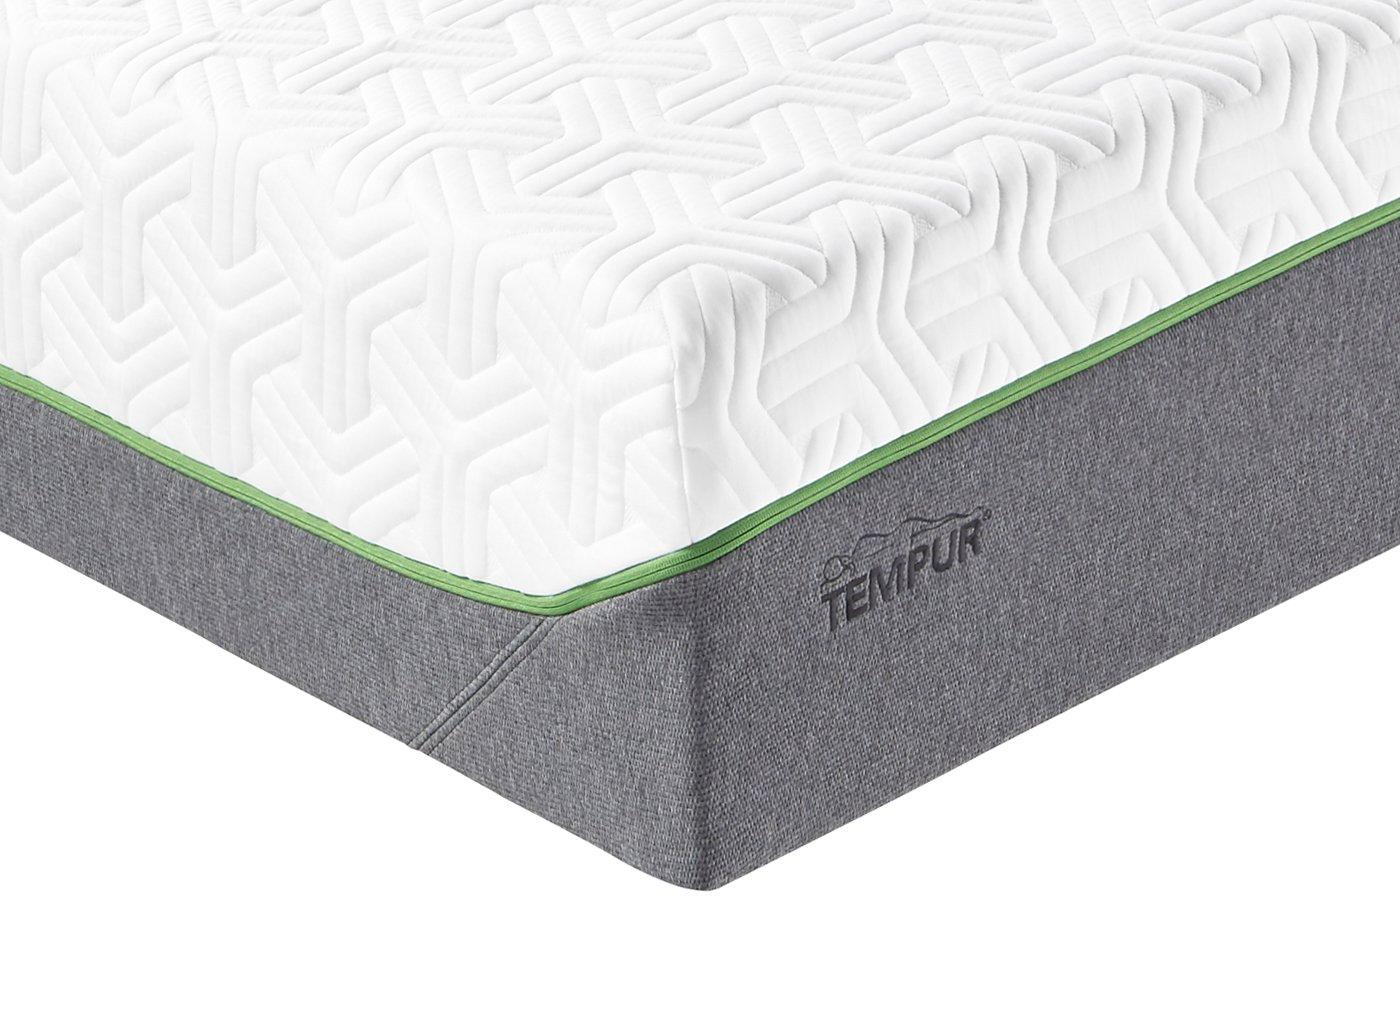 Tempur Cooltouch Hybrid Luxe Adjustable Mattress - Medium Firm 2'6 Small single